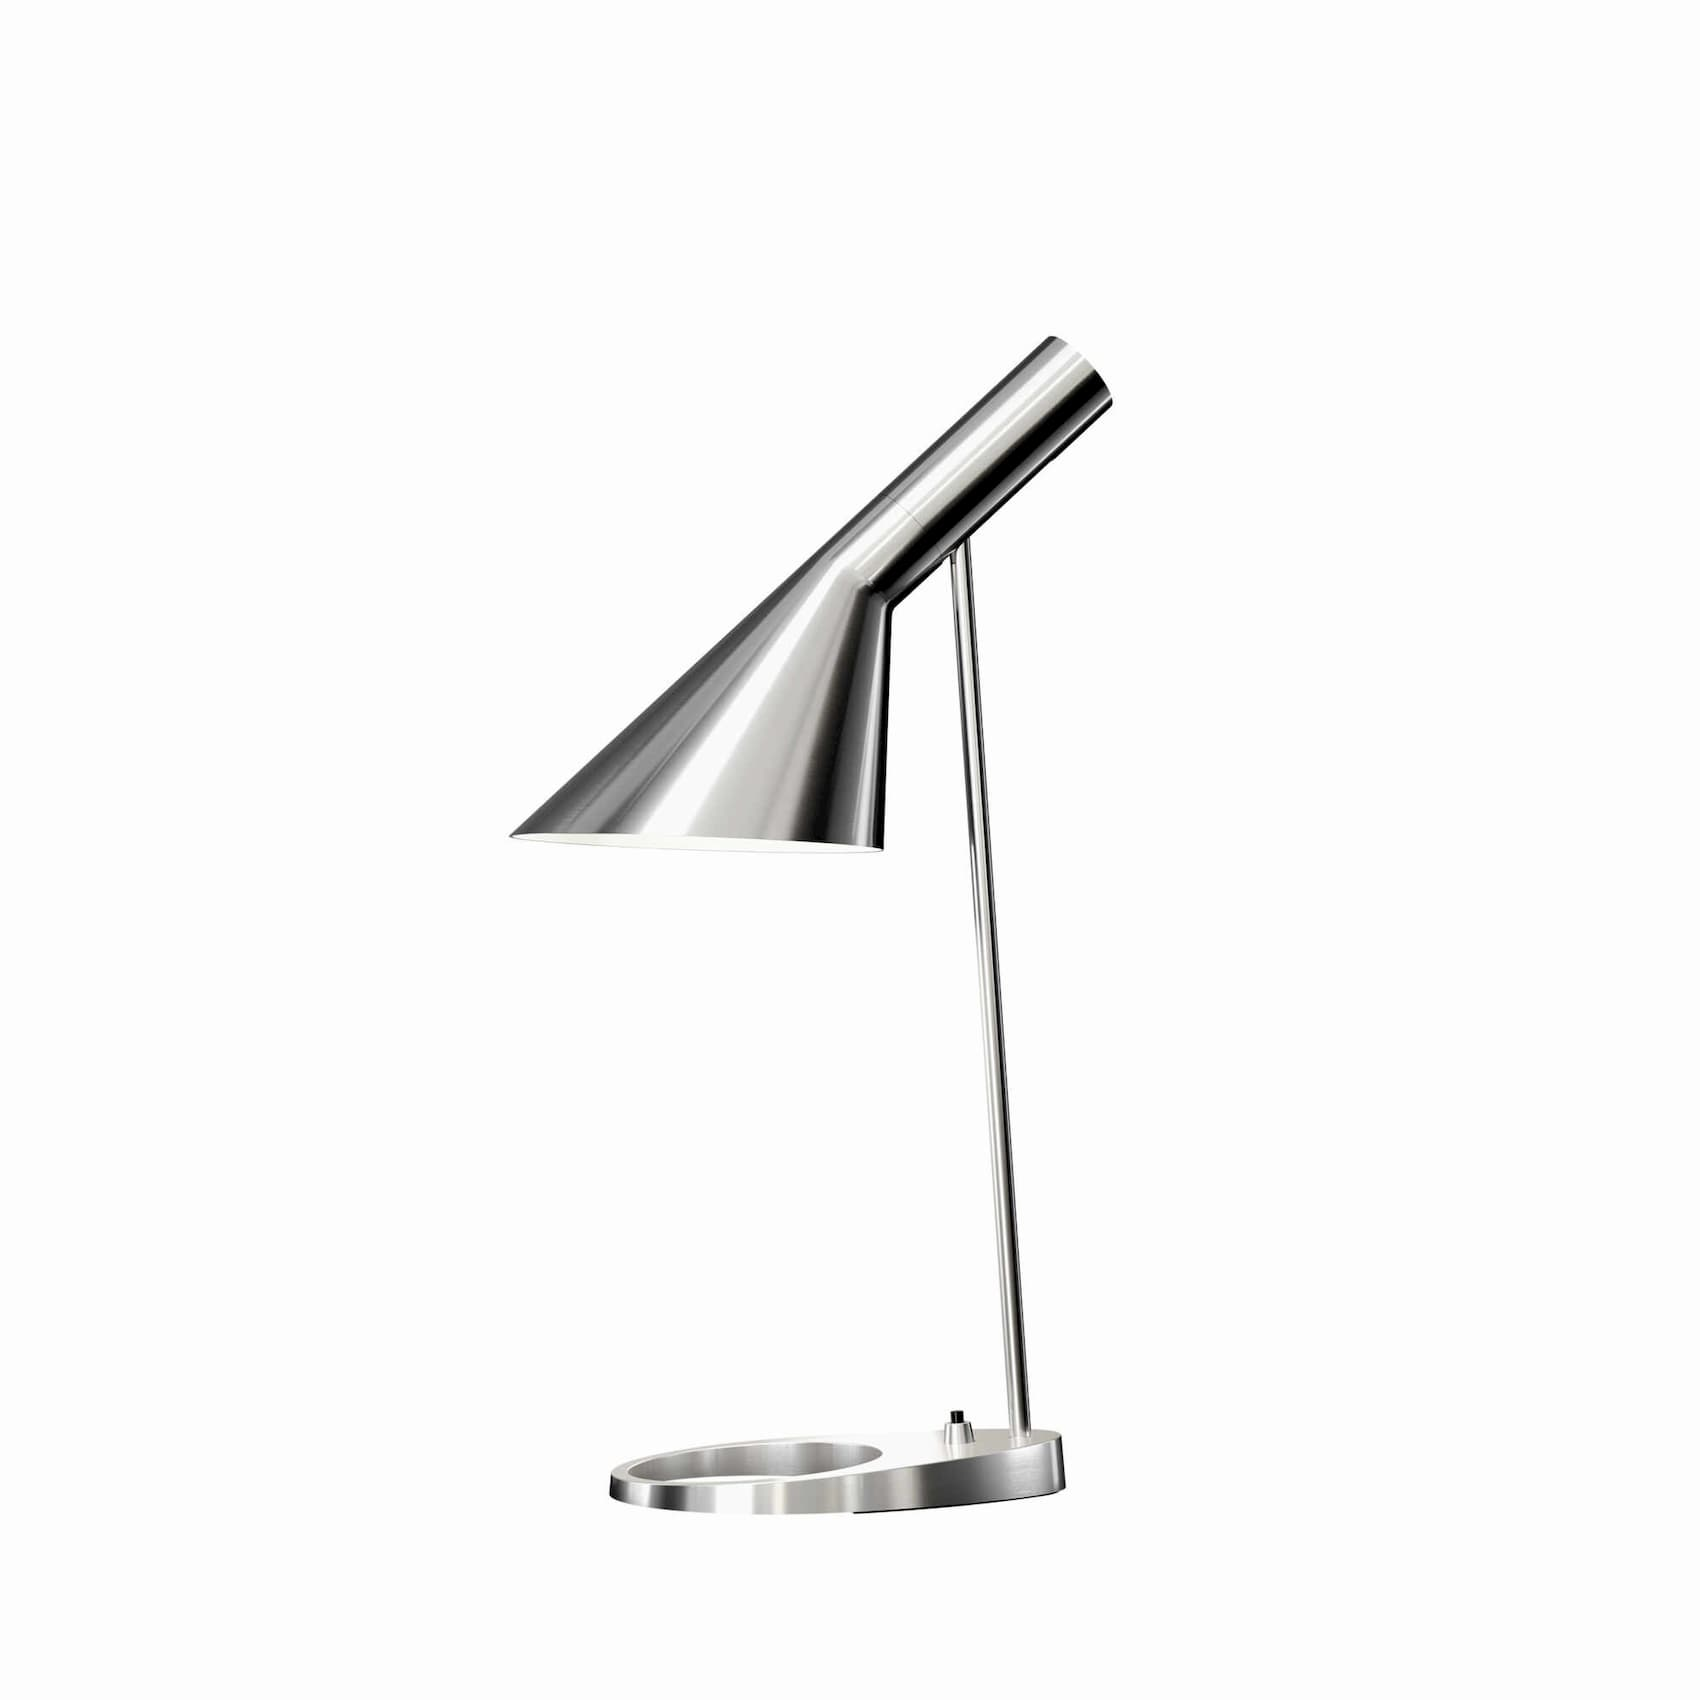 Stainless steel polished - +$102.15